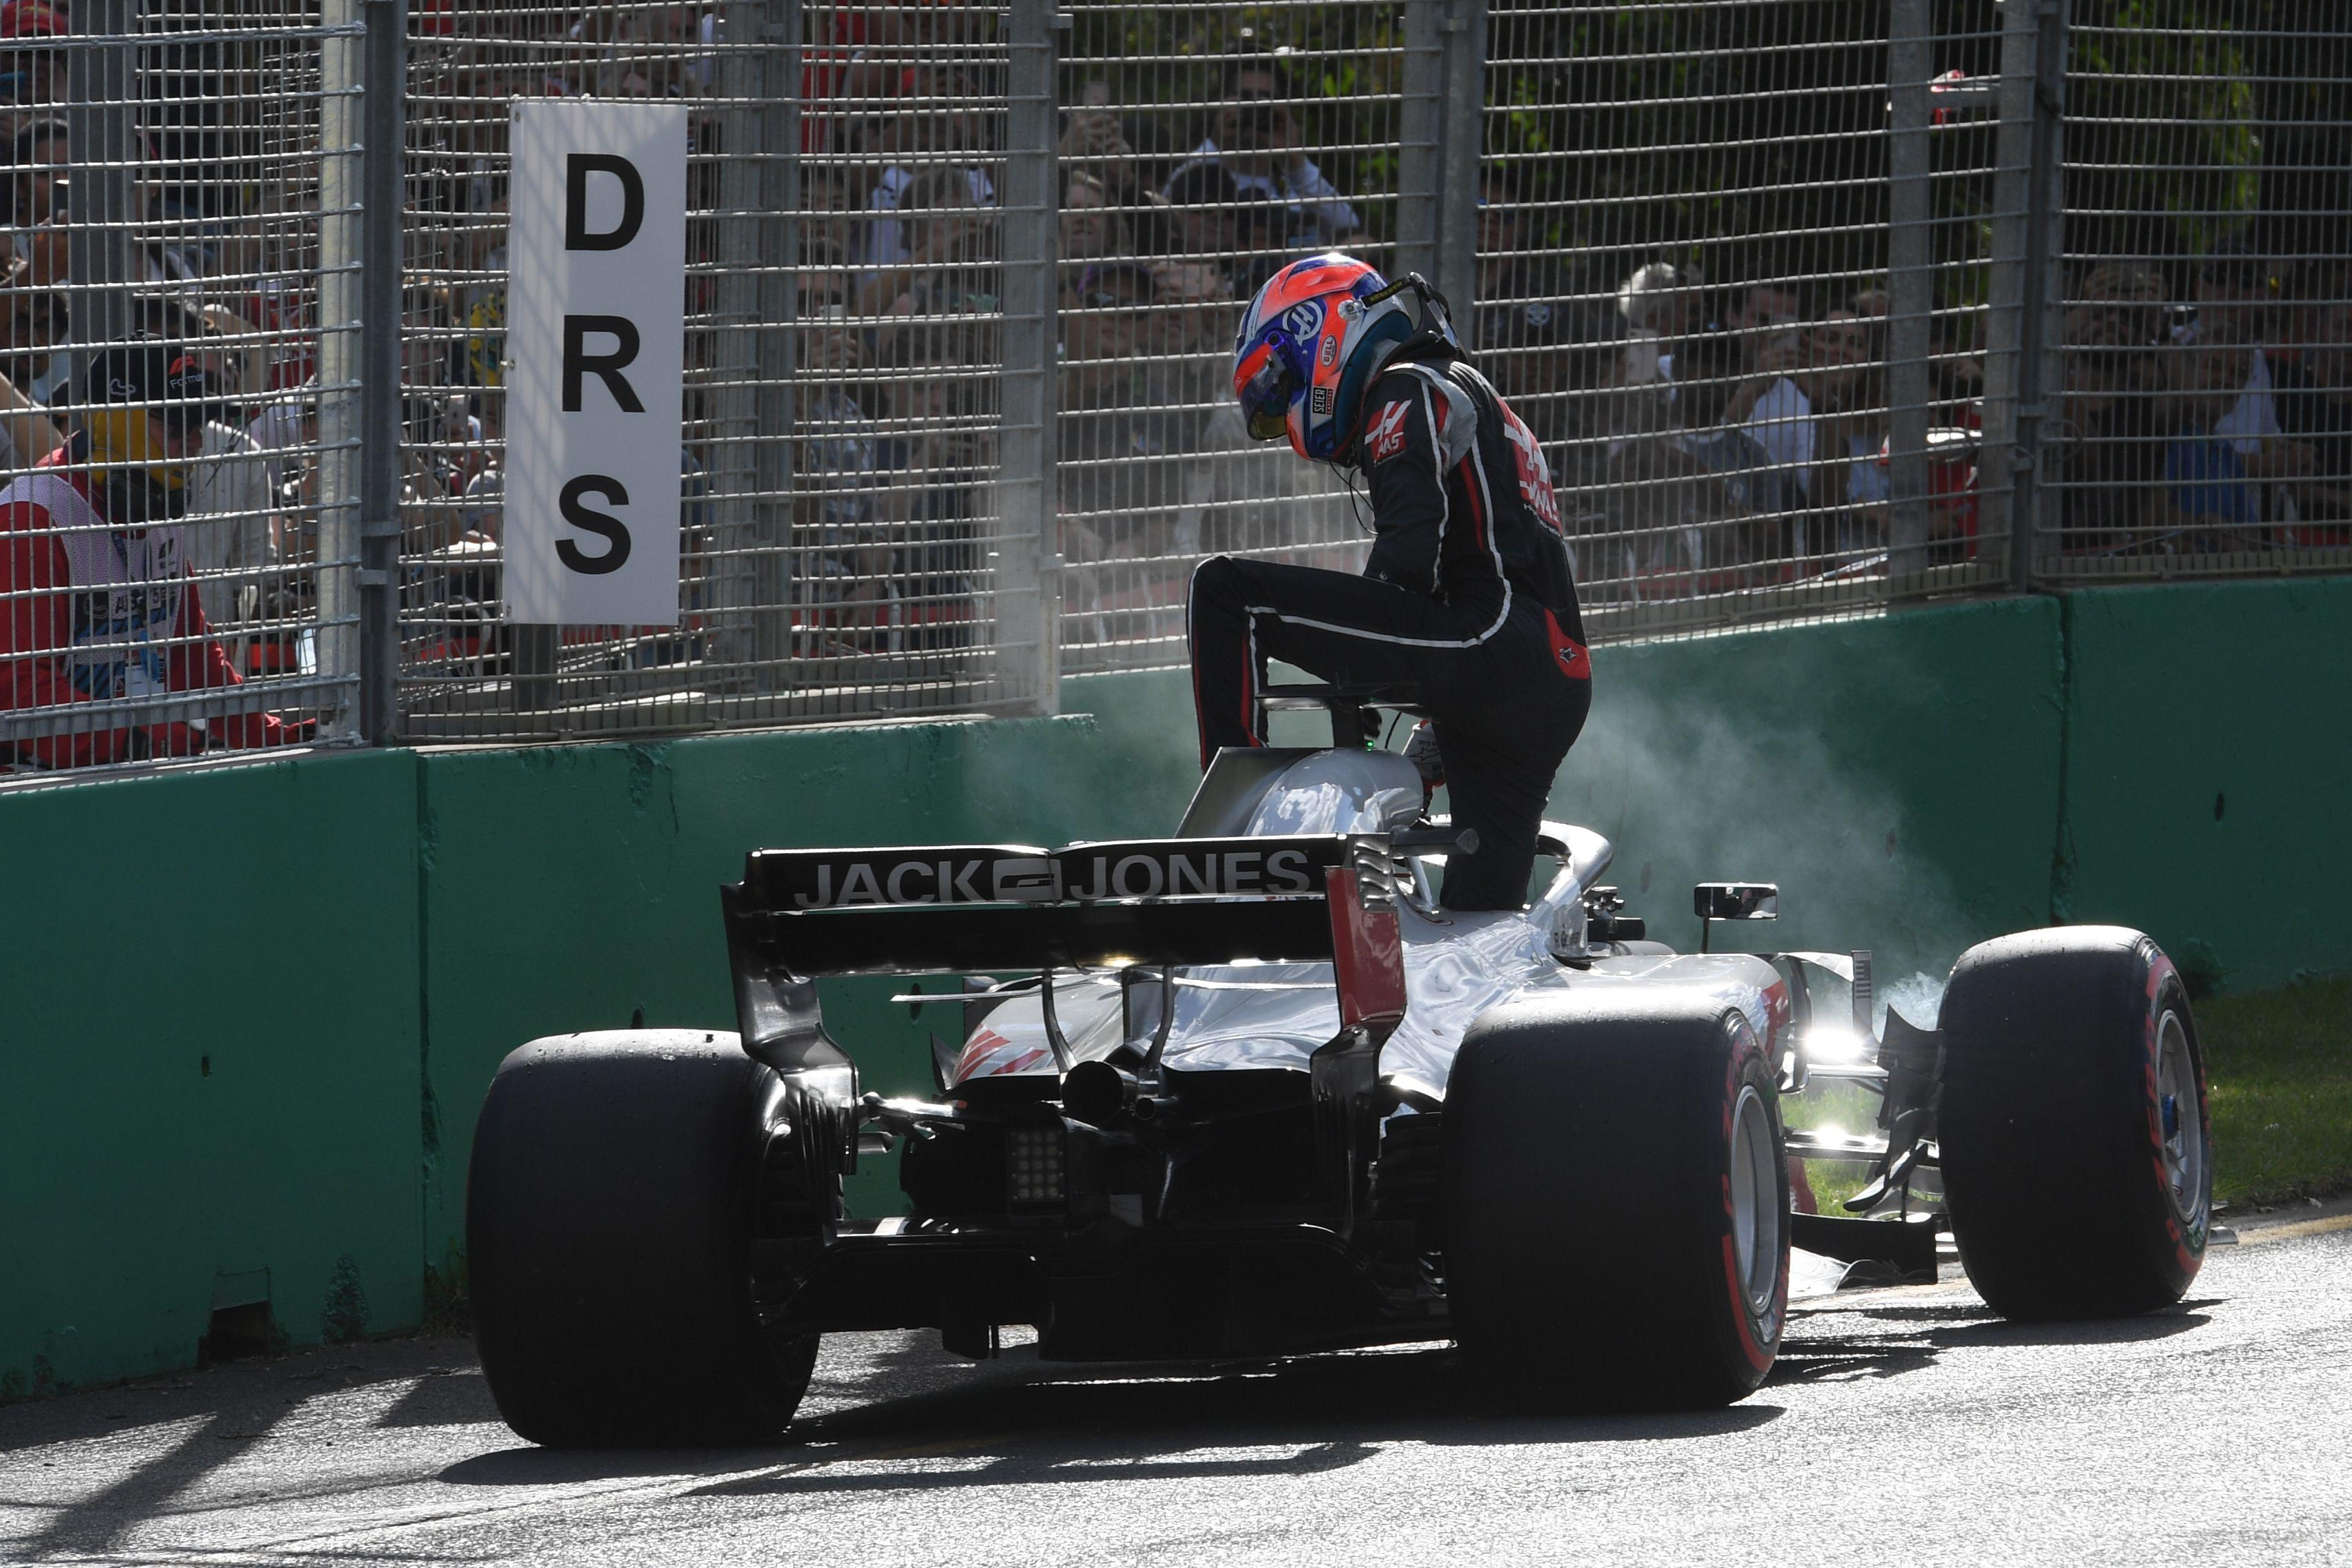 Romain Grosjean leaves his car after crashing in Melbourne